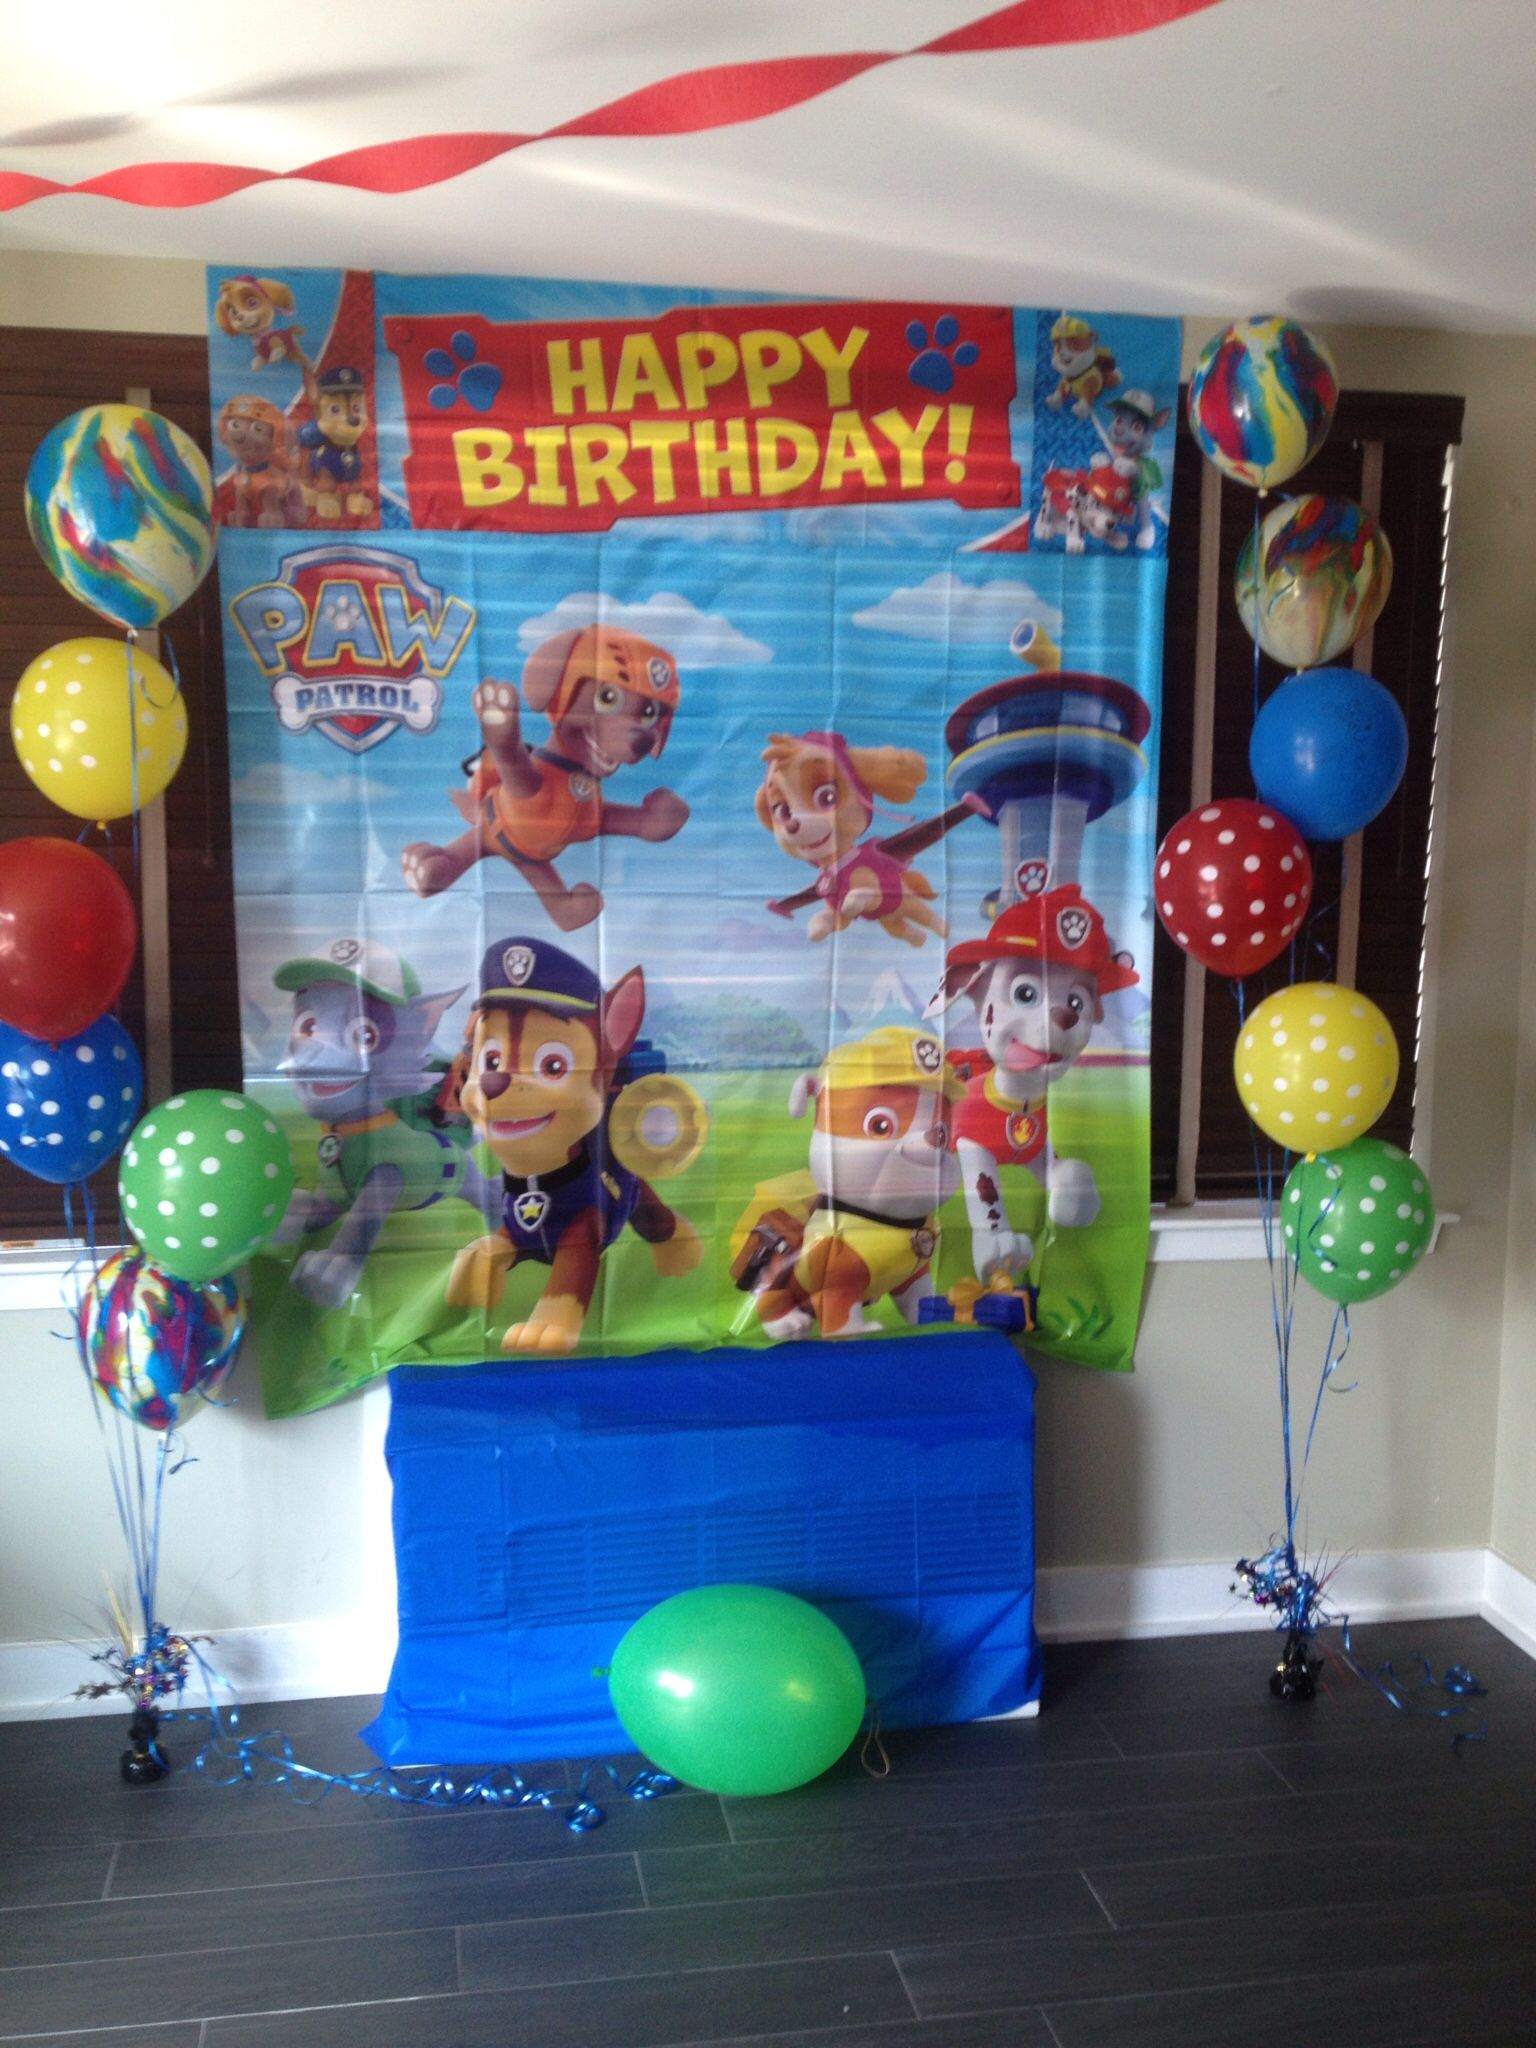 Details about PAW PATROL Scene Setter birthday party wall decor ...